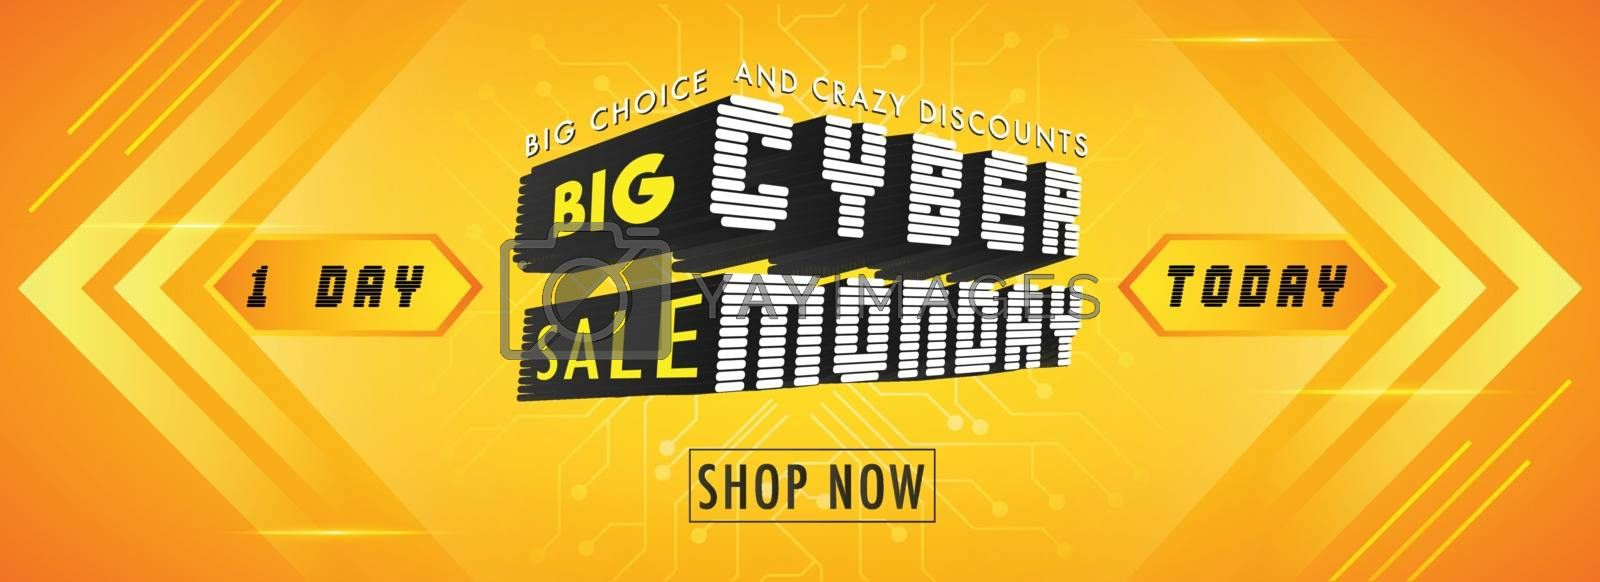 Big Sale advertising banner design with 3D creative text Cyber M by aispl